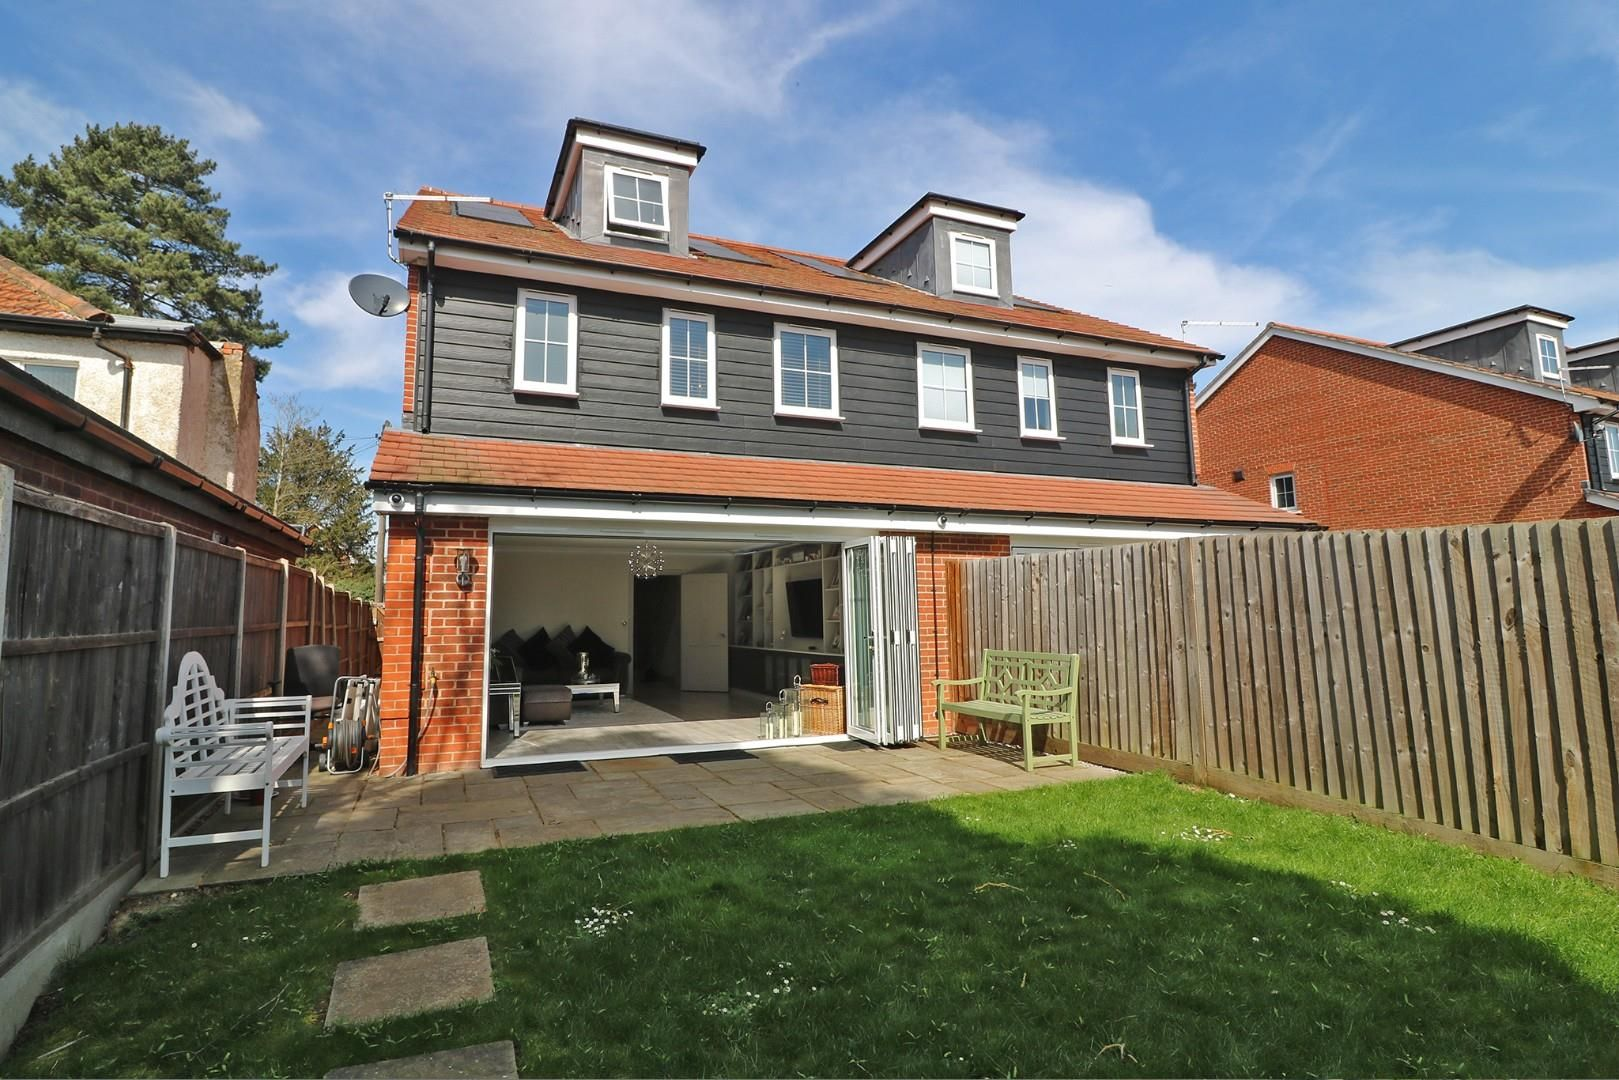 4 bed semi-detached to rent in Binfield - Property Image 1